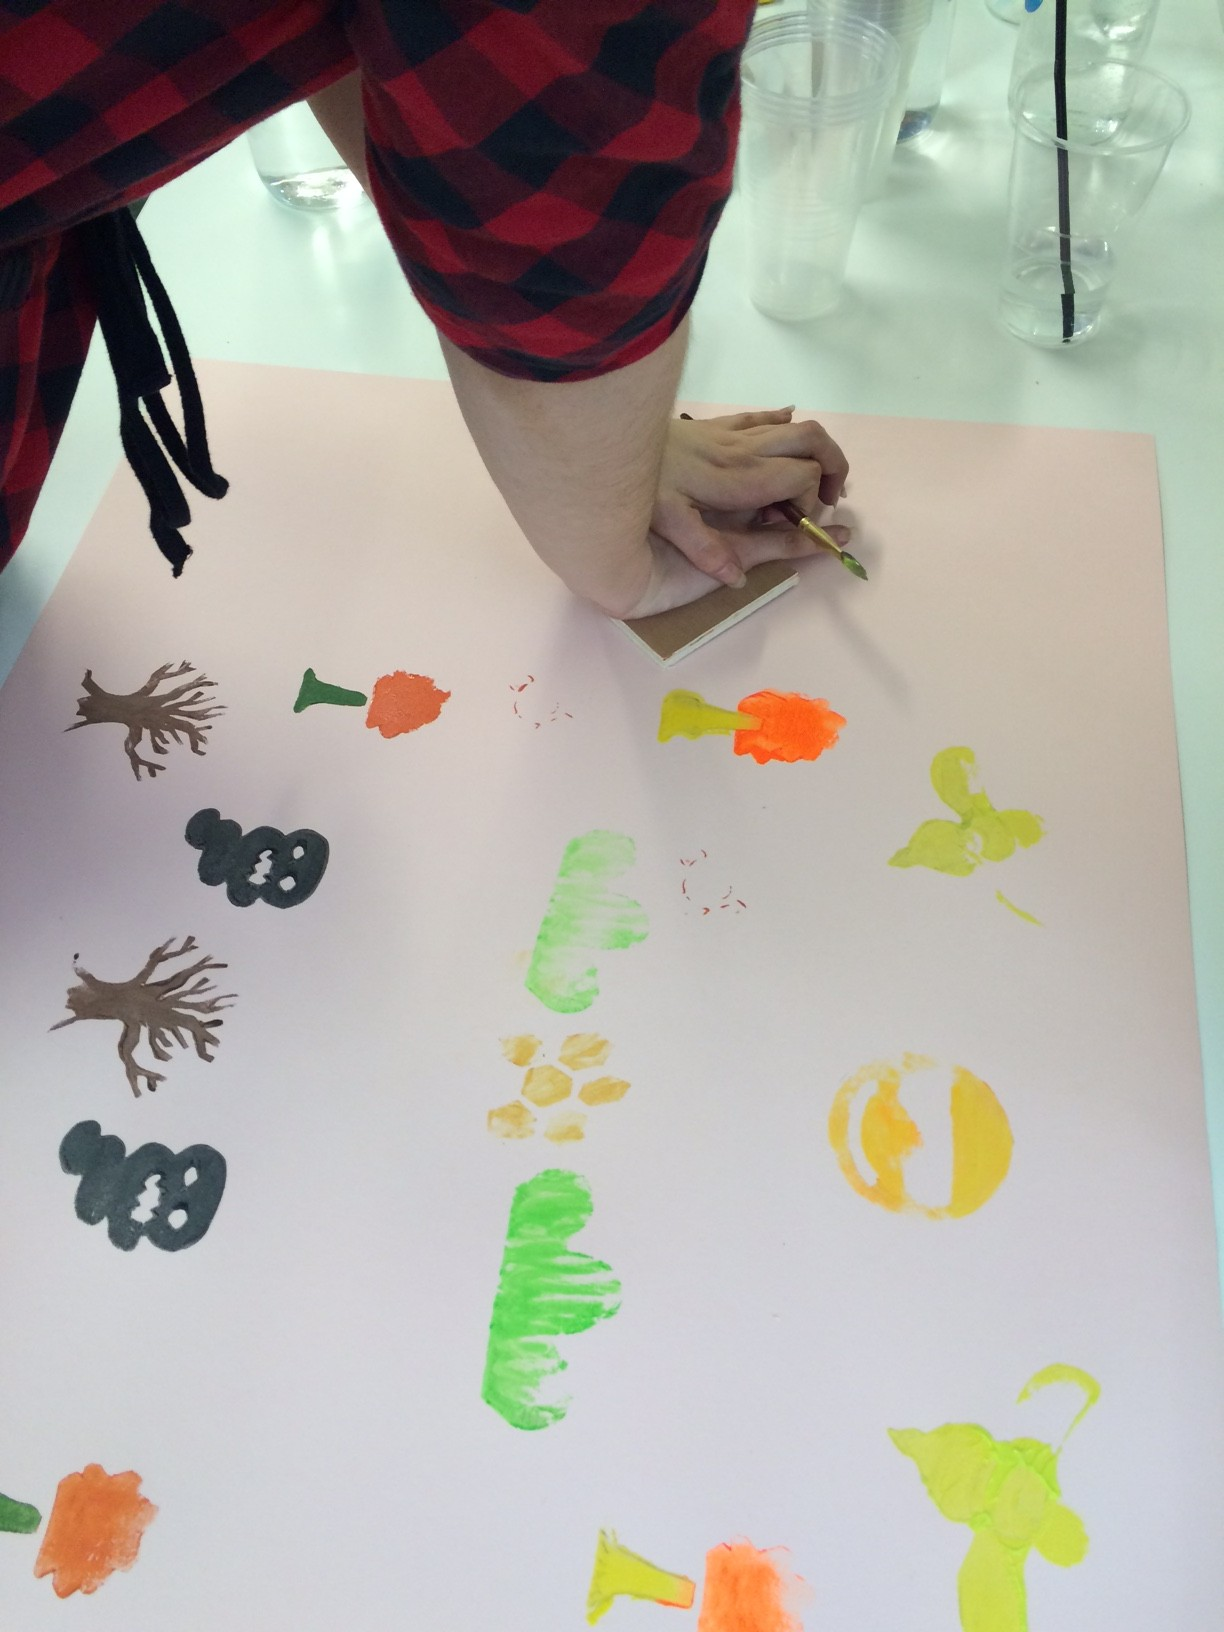 Stamping a large piece of paper with an image of a bee